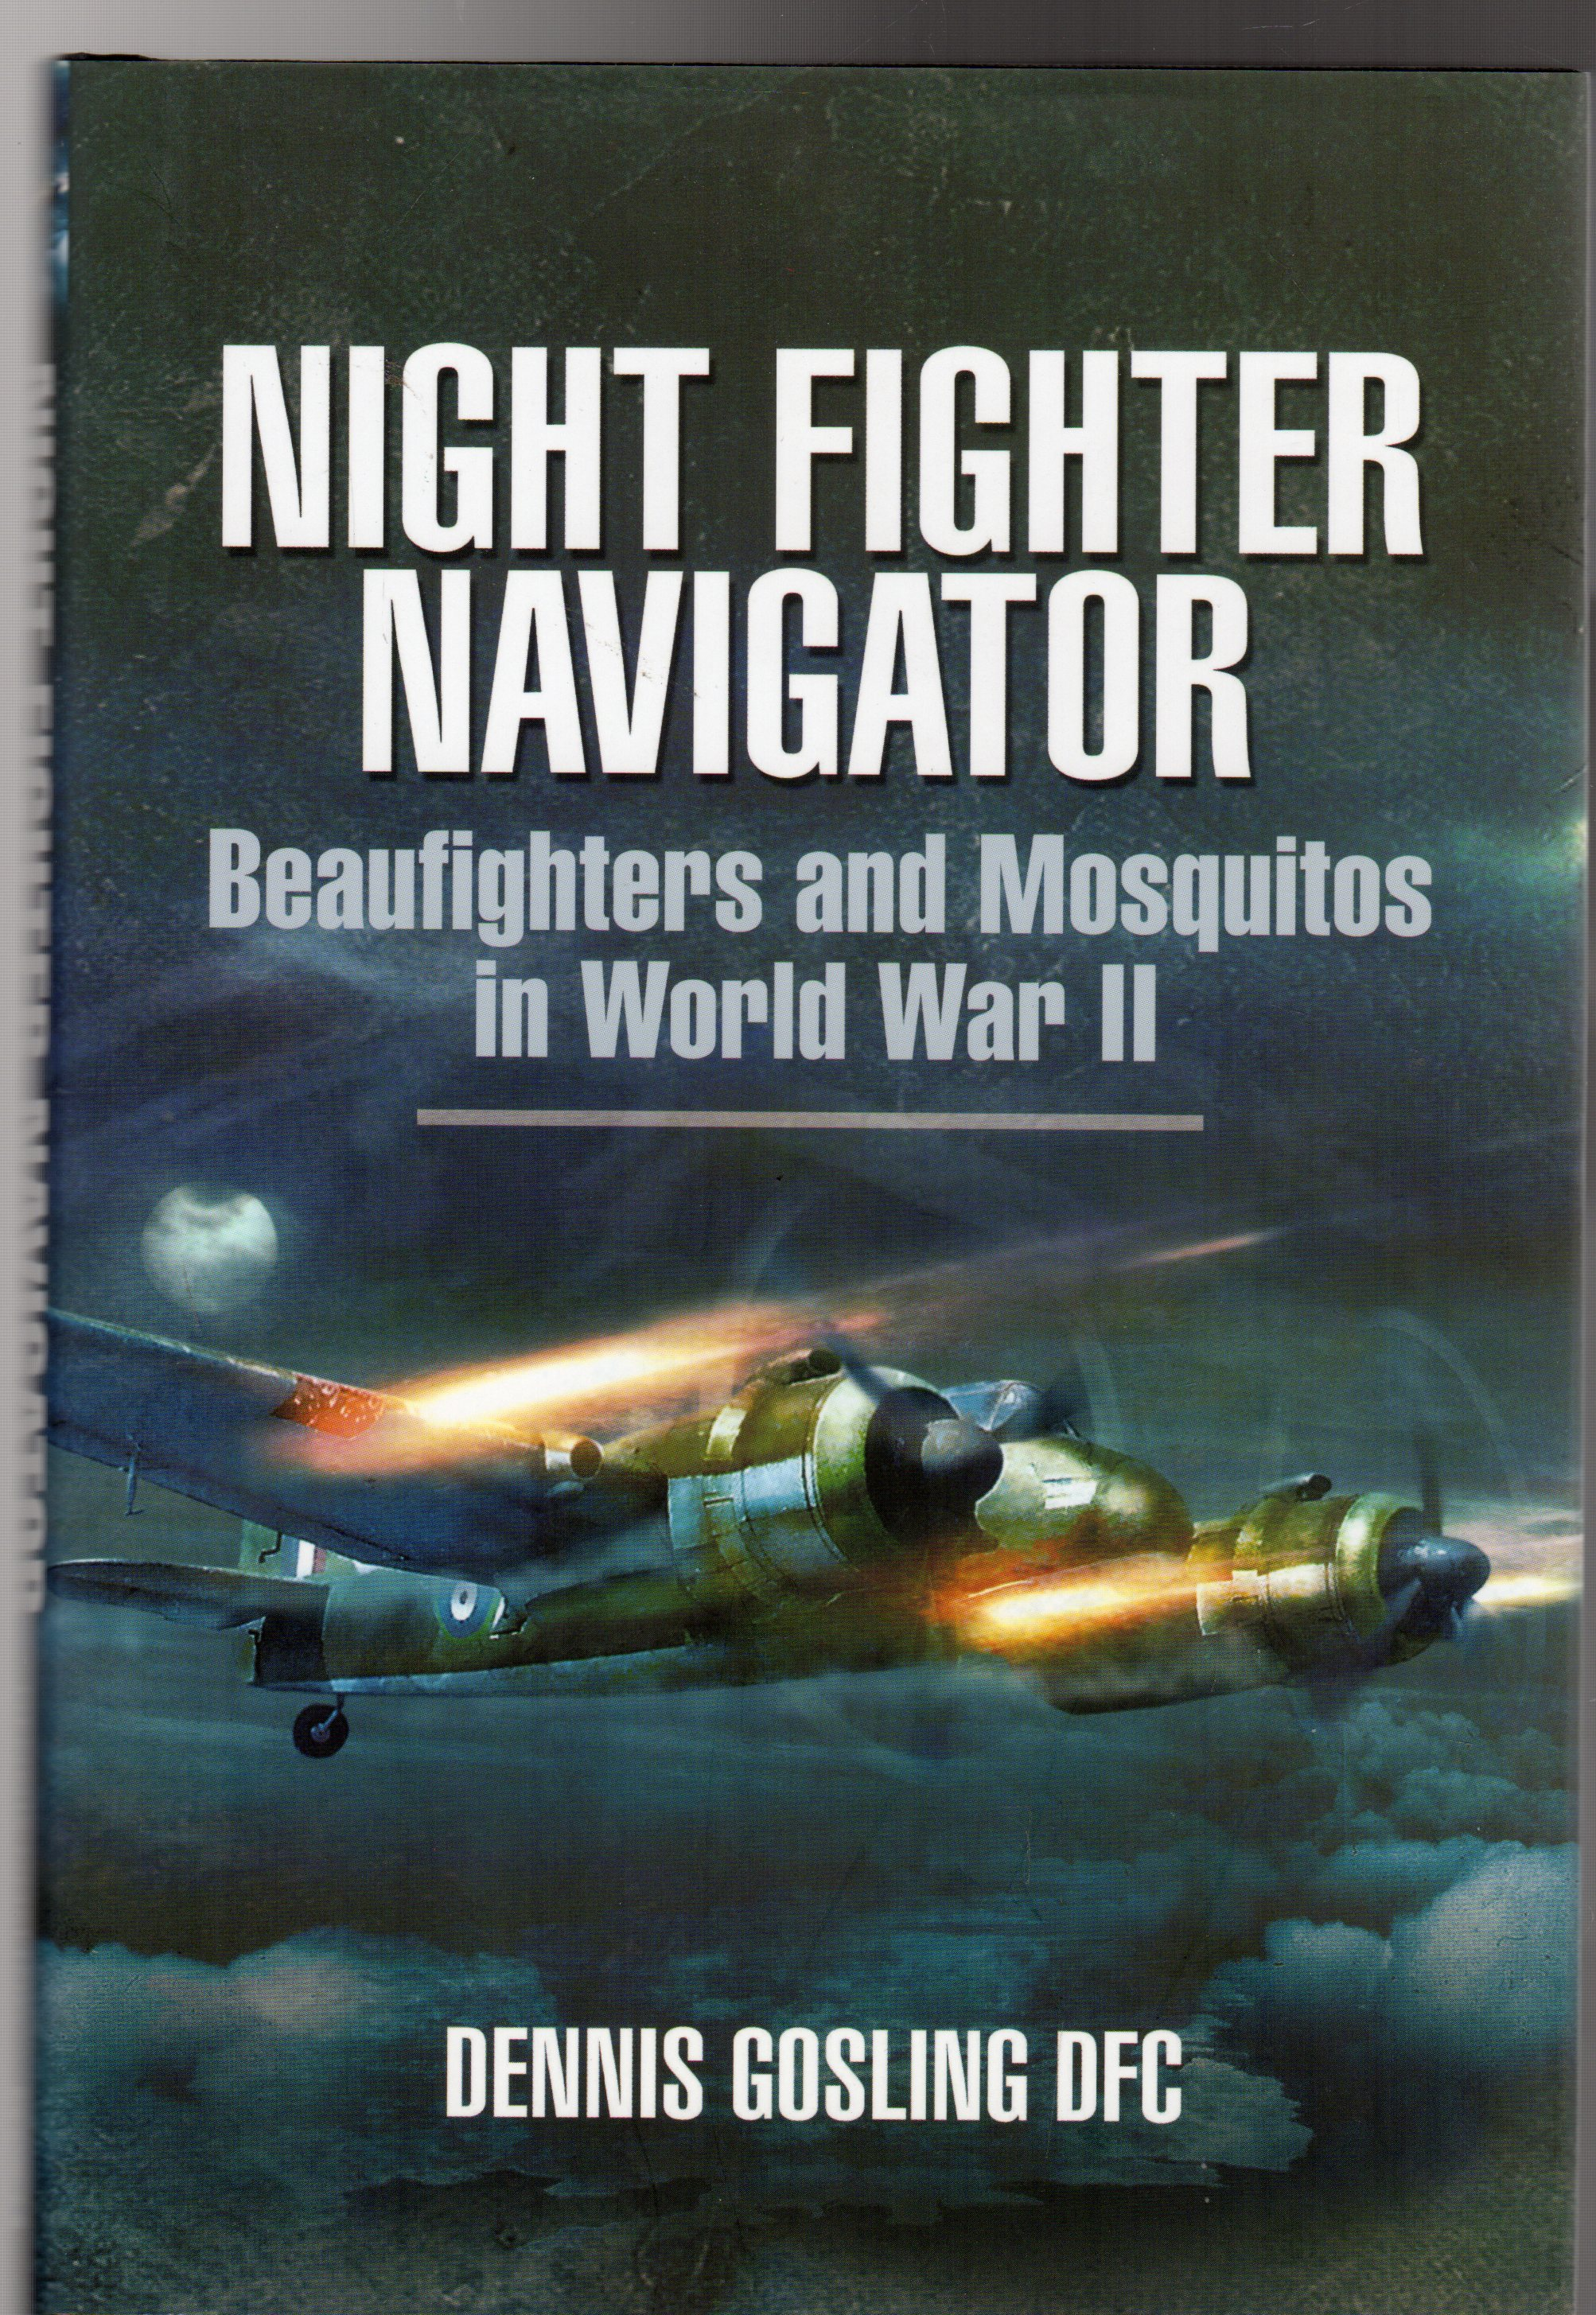 Image for Night Fighter Navigator: Beaufighters and Mosquitos in WWII